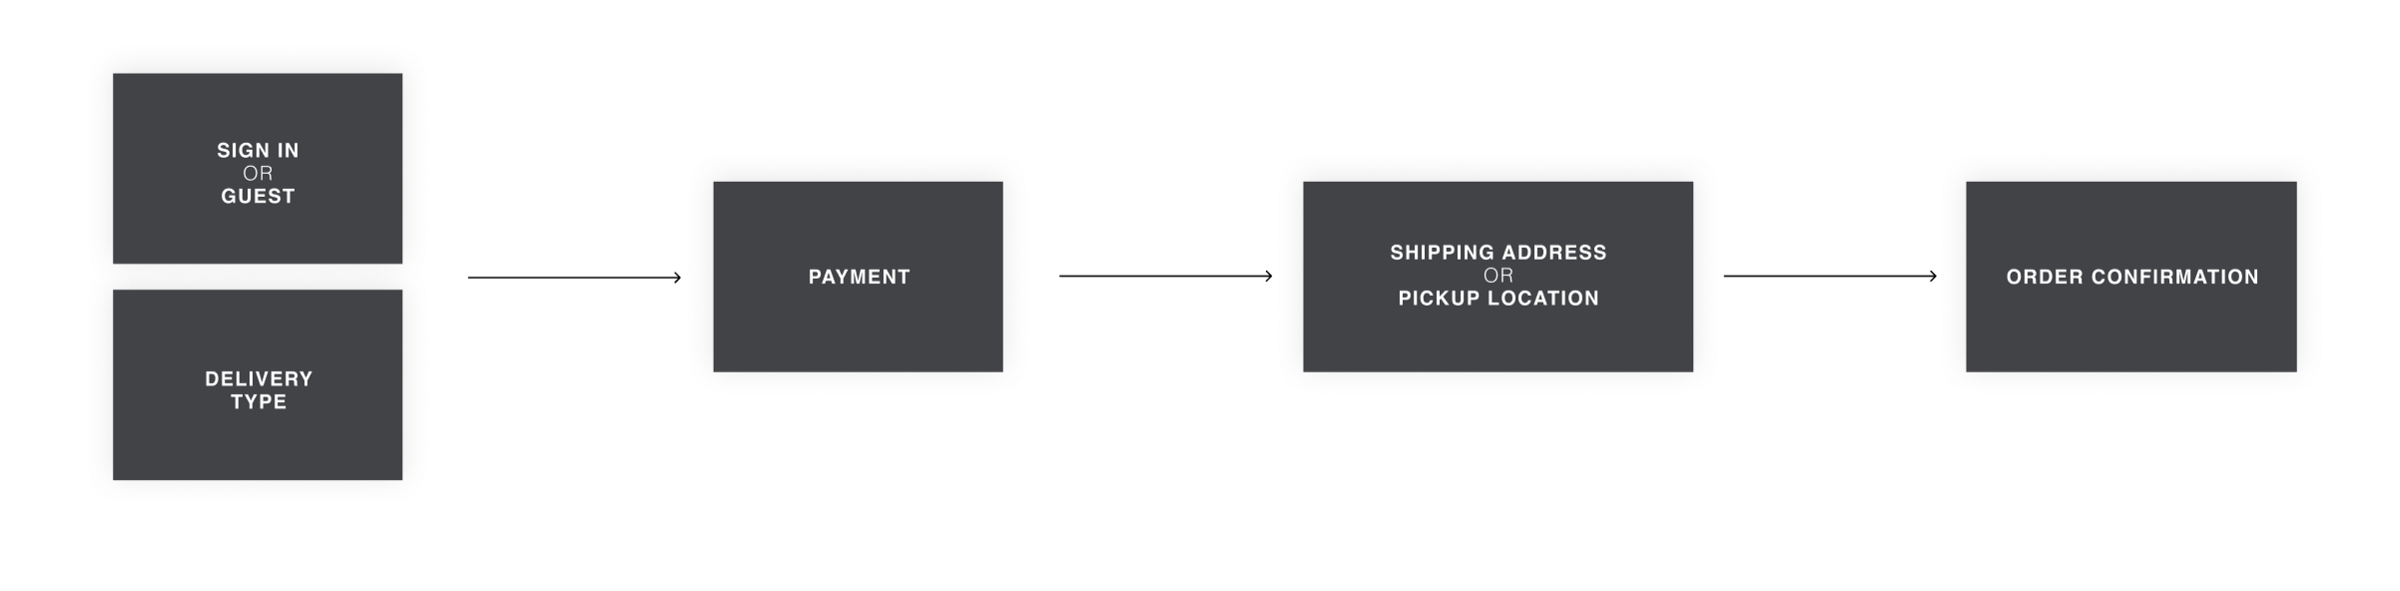 Payment-first checkout experience — a UX exploration 16